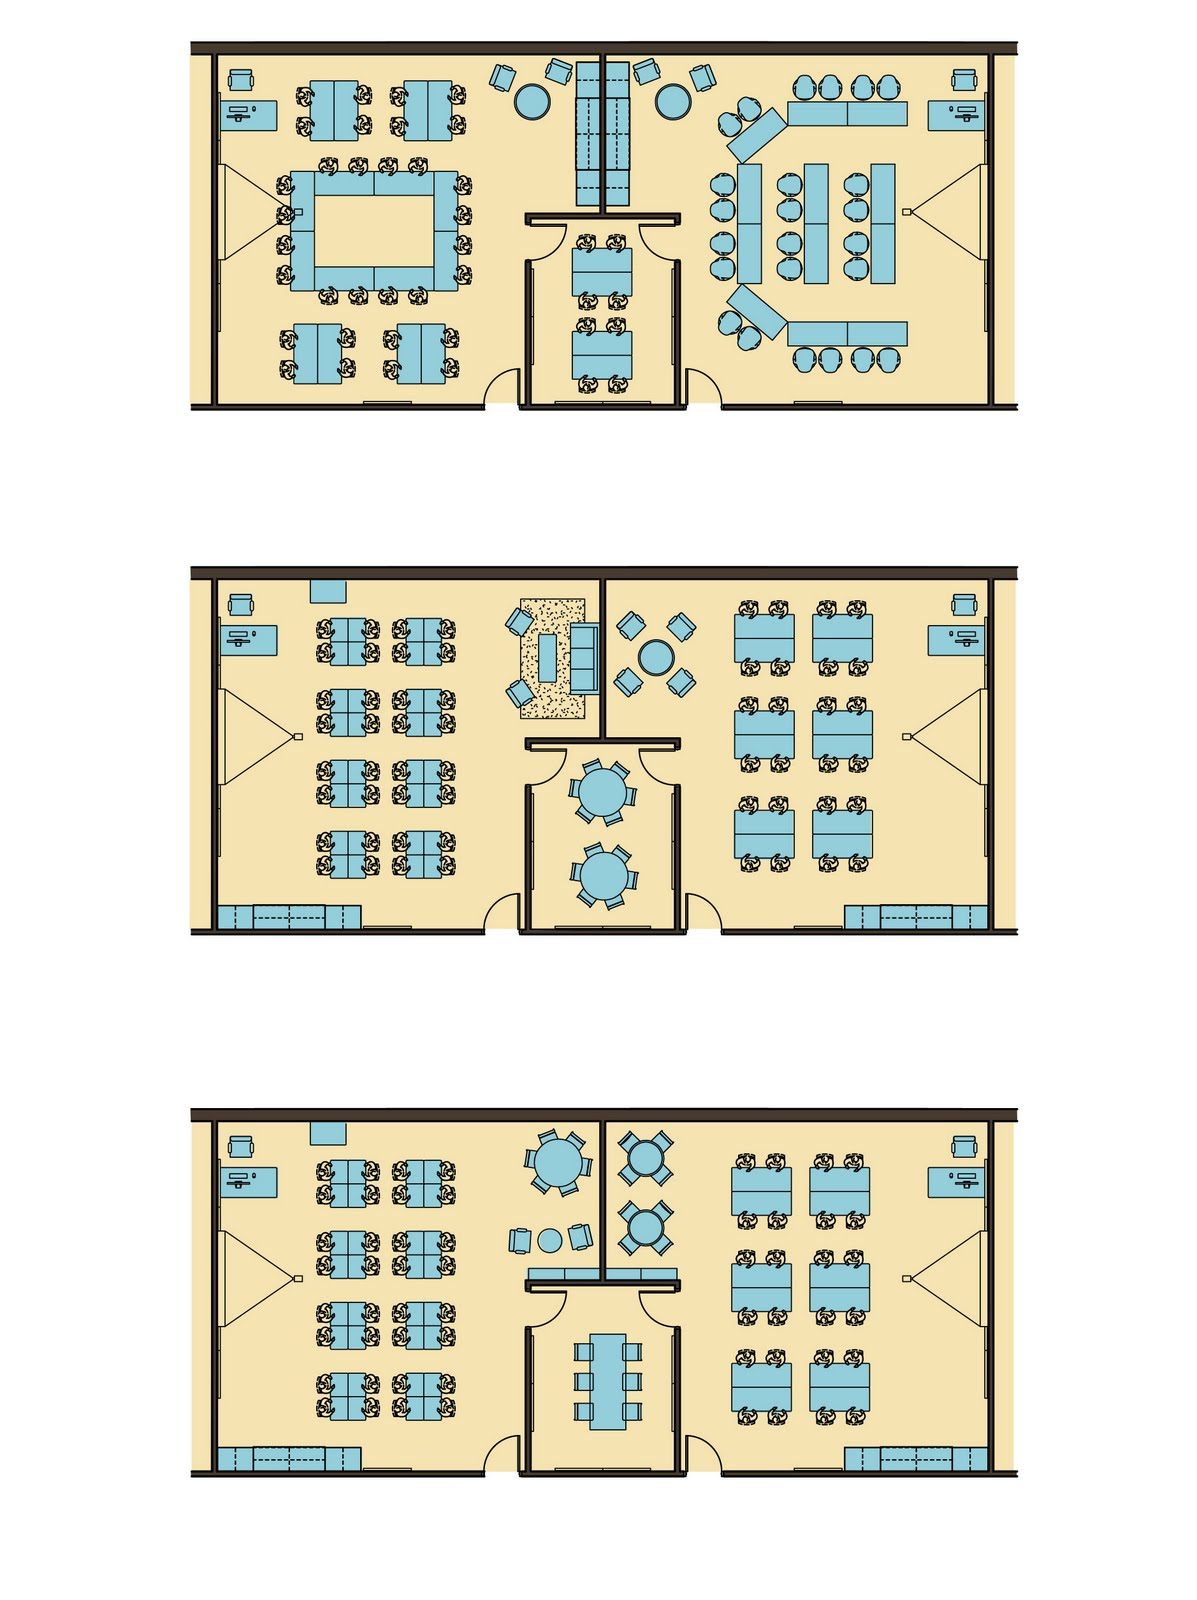 Classroom Design Ideas High School ~ Bedford high school classroom layout options